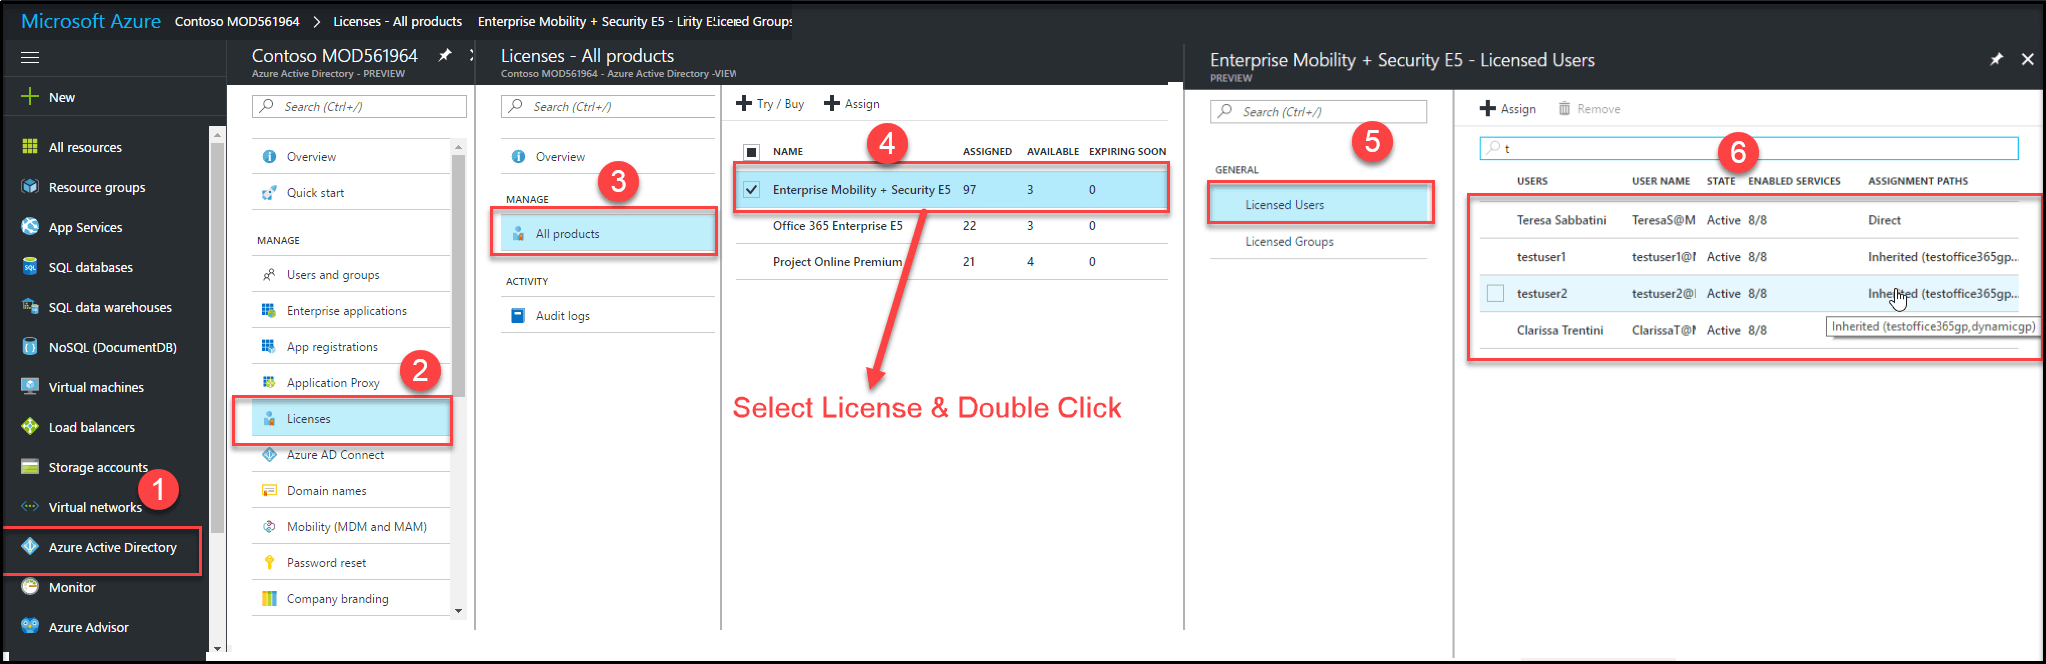 How to manage Office 365 Licenses based on Groups